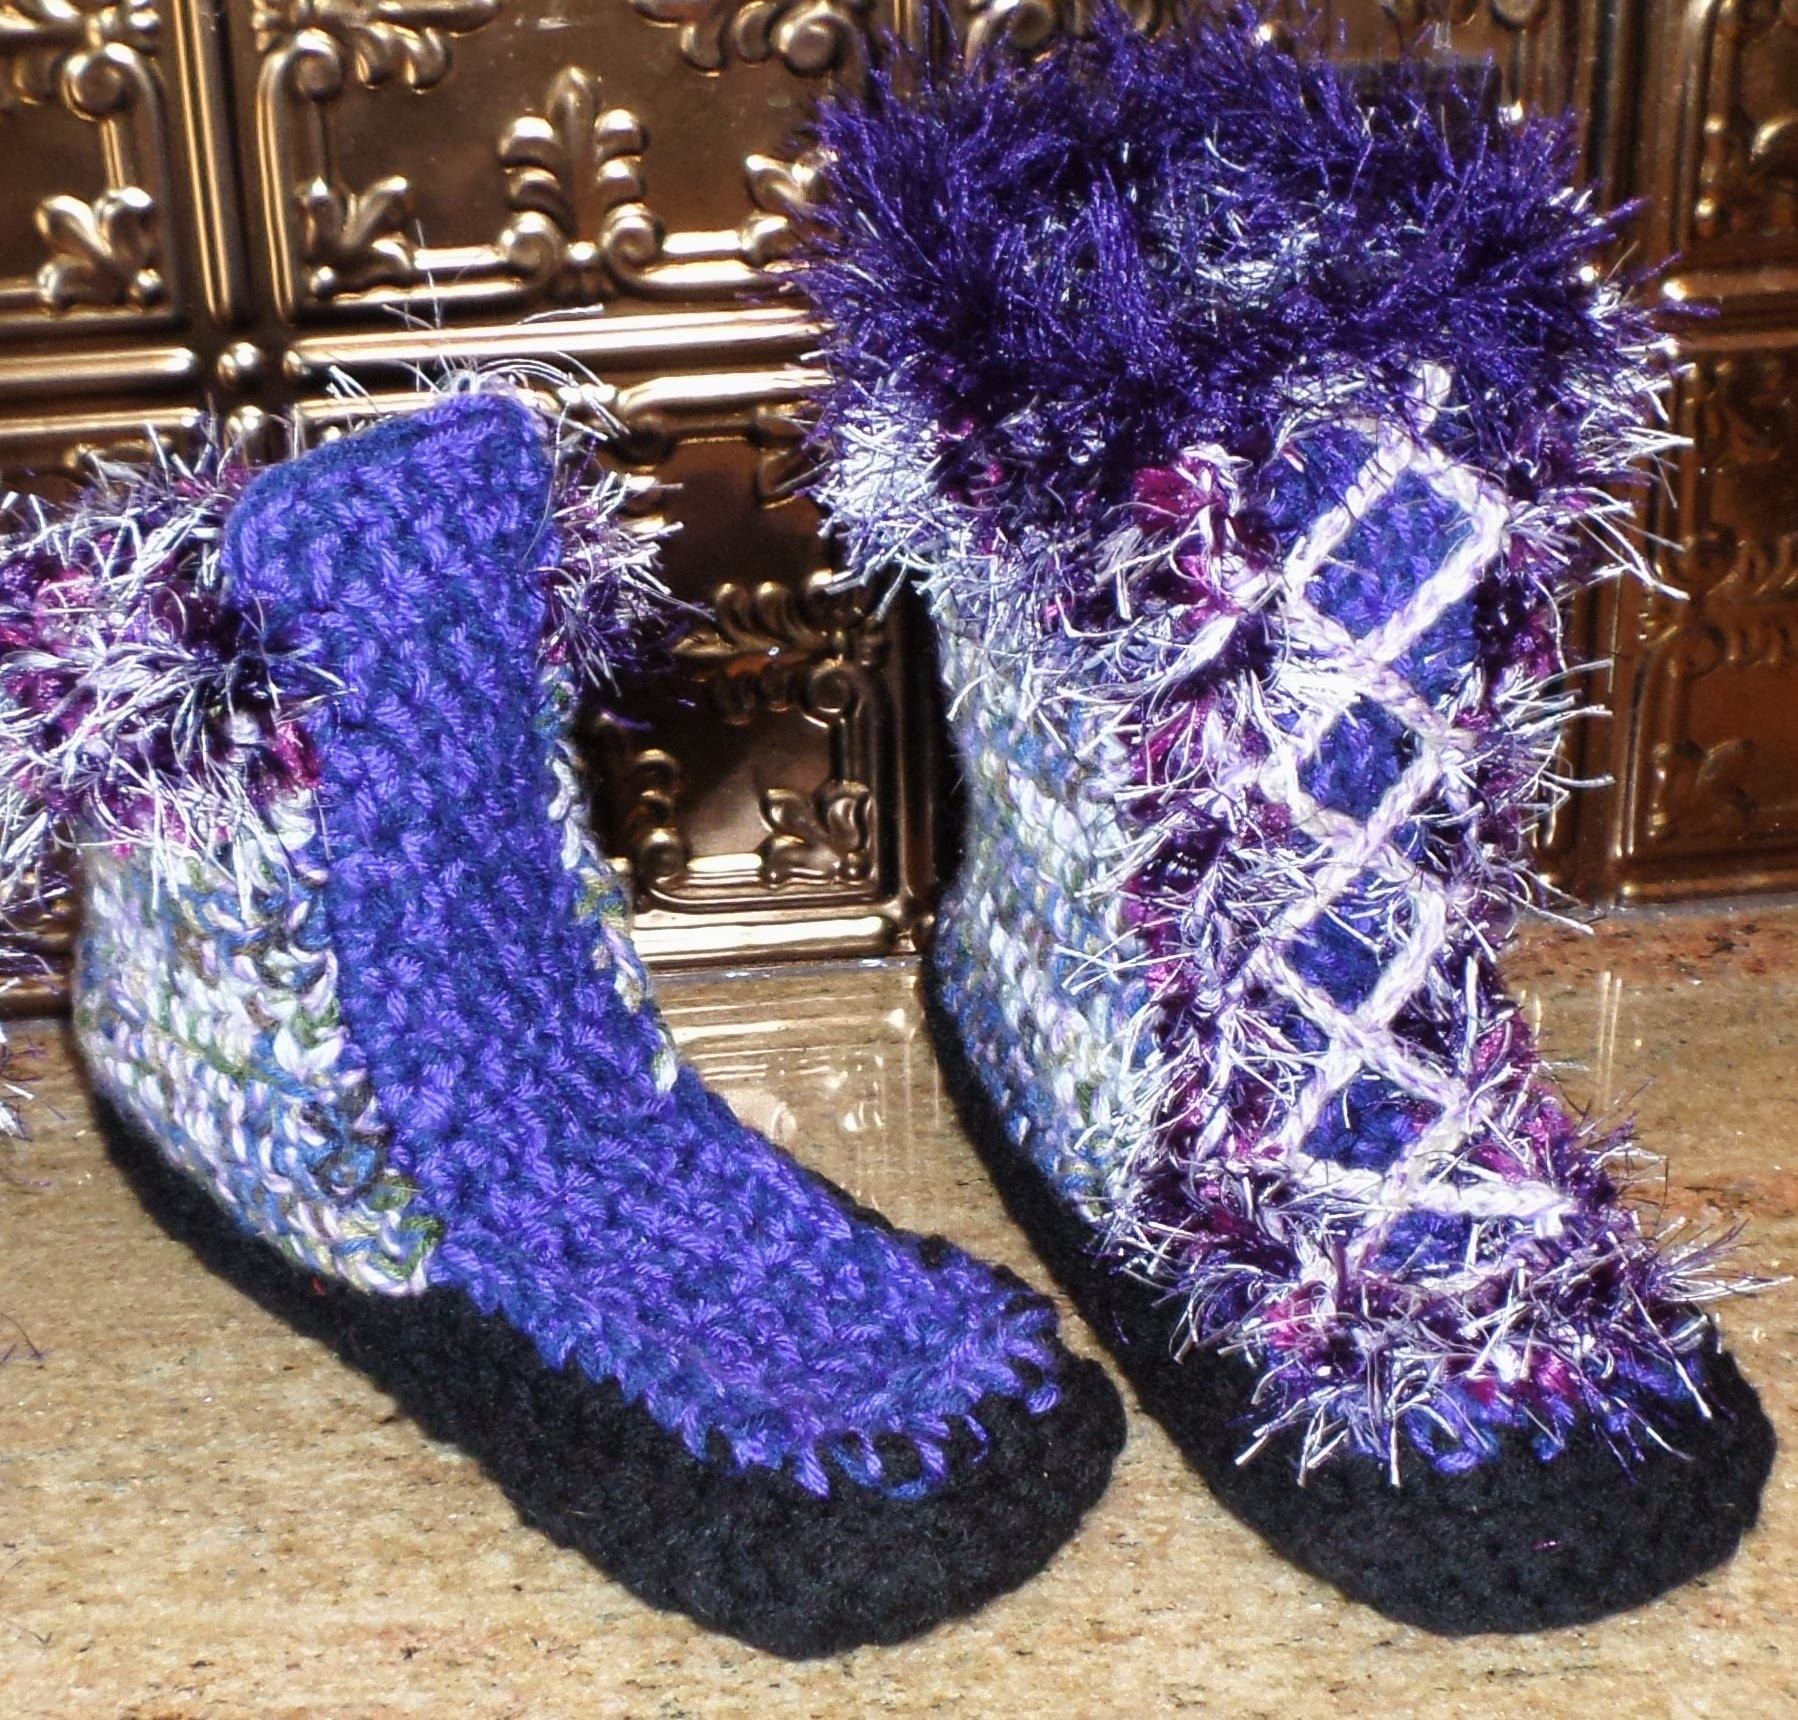 Crcohet Slipper Boot - Step 4 & Finish -